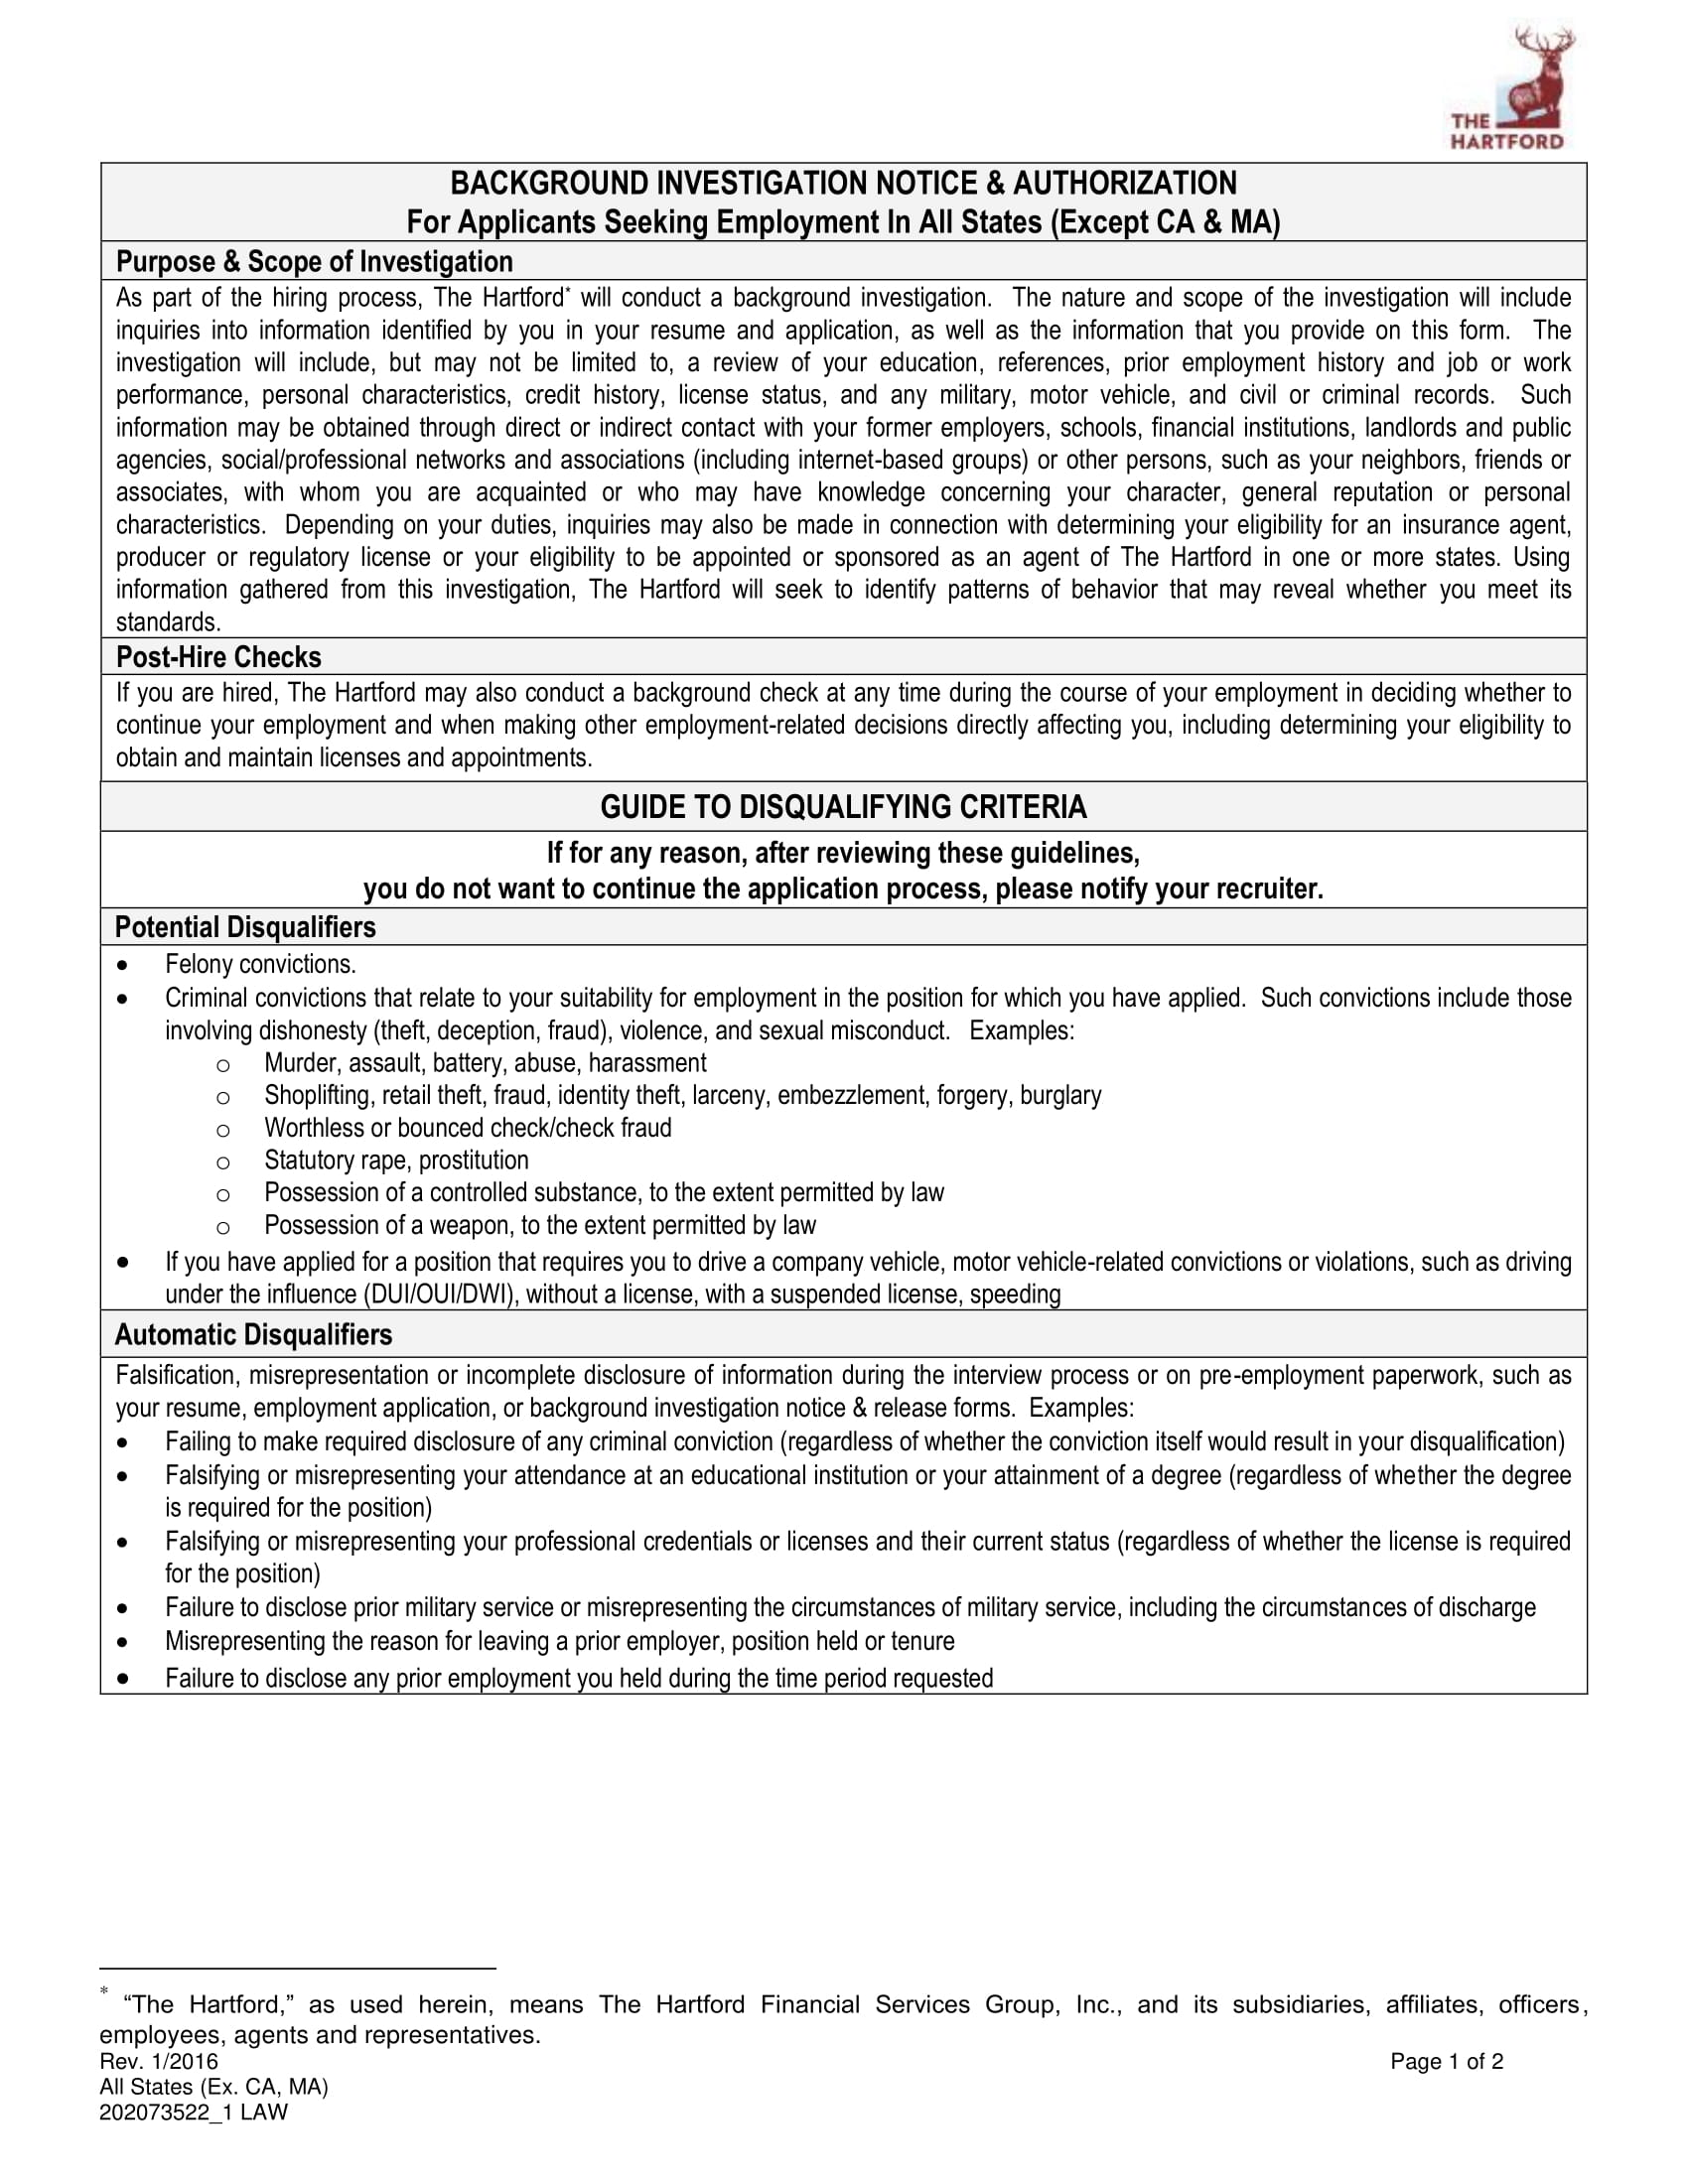 background investigation notice and authorization form